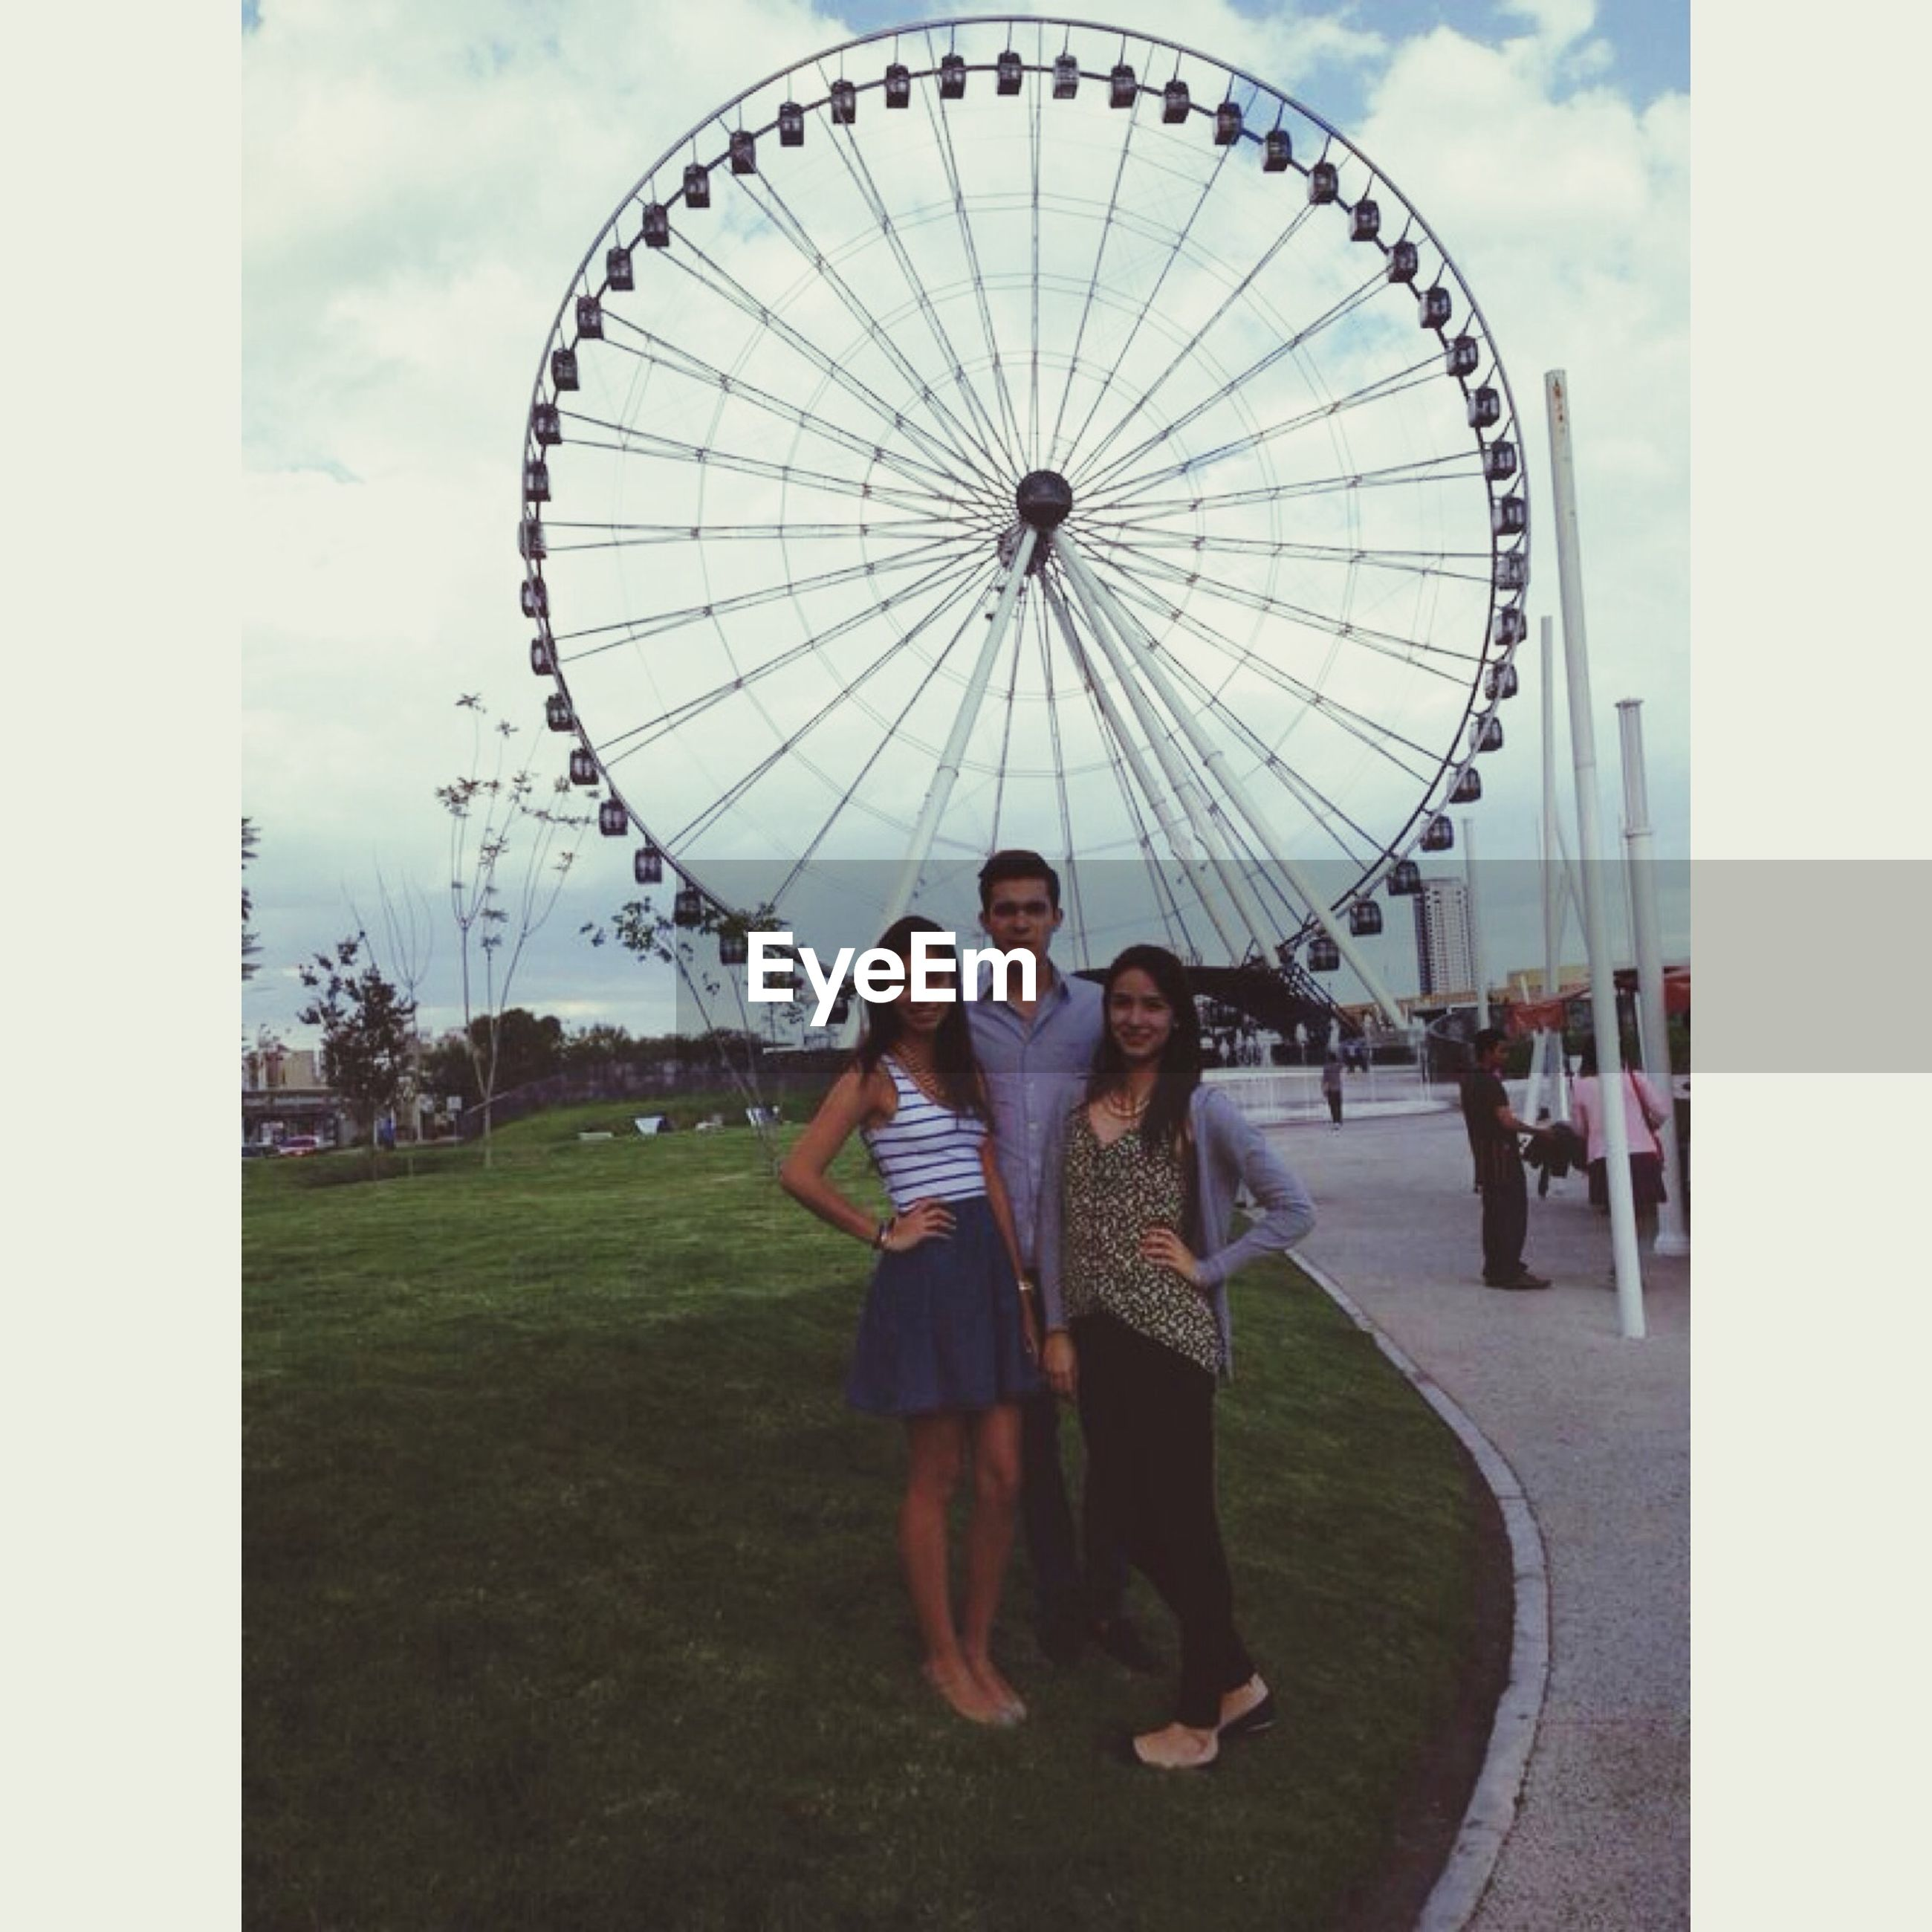 leisure activity, lifestyles, amusement park, transfer print, fun, full length, enjoyment, ferris wheel, amusement park ride, arts culture and entertainment, childhood, casual clothing, auto post production filter, sky, circle, standing, day, playing